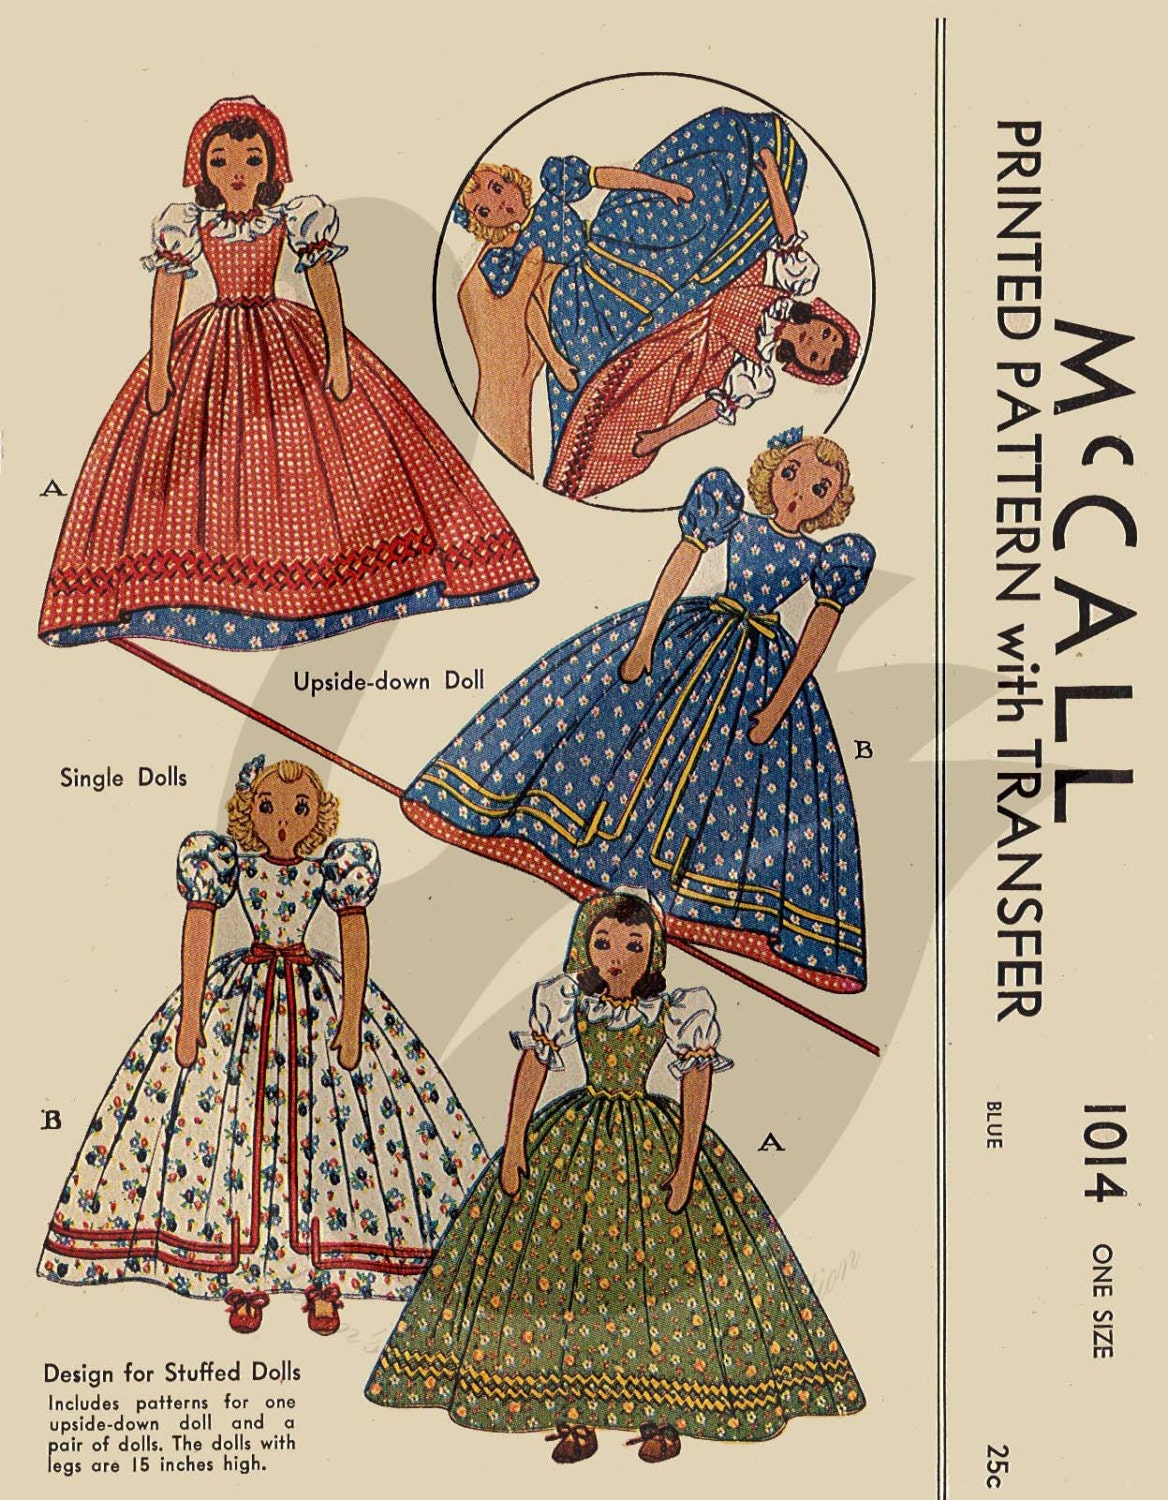 Reproduction Vintage Upside Down & Single Dolls Sewing Pattern